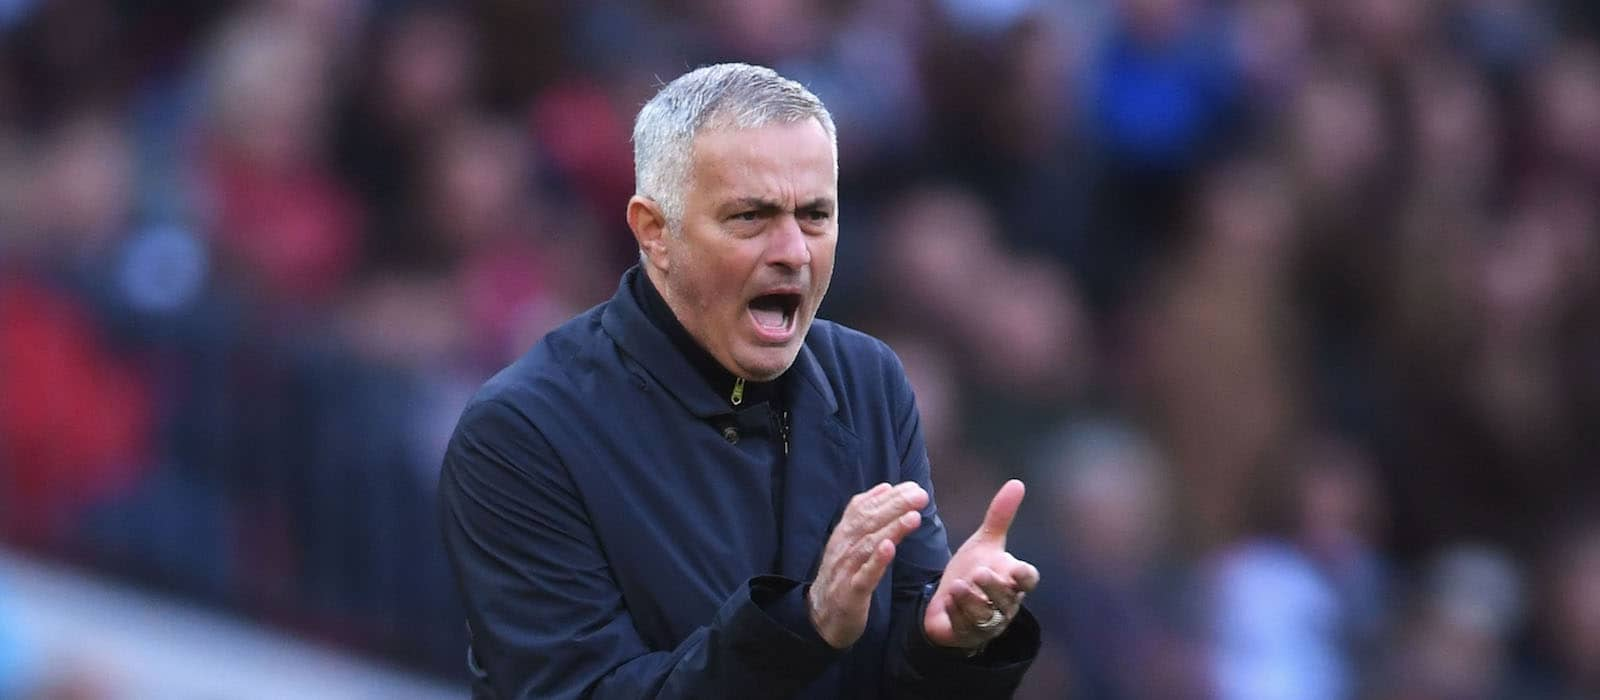 Jose Mourinho hails Manchester United players' mentality and desire in comeback win vs Newcastle